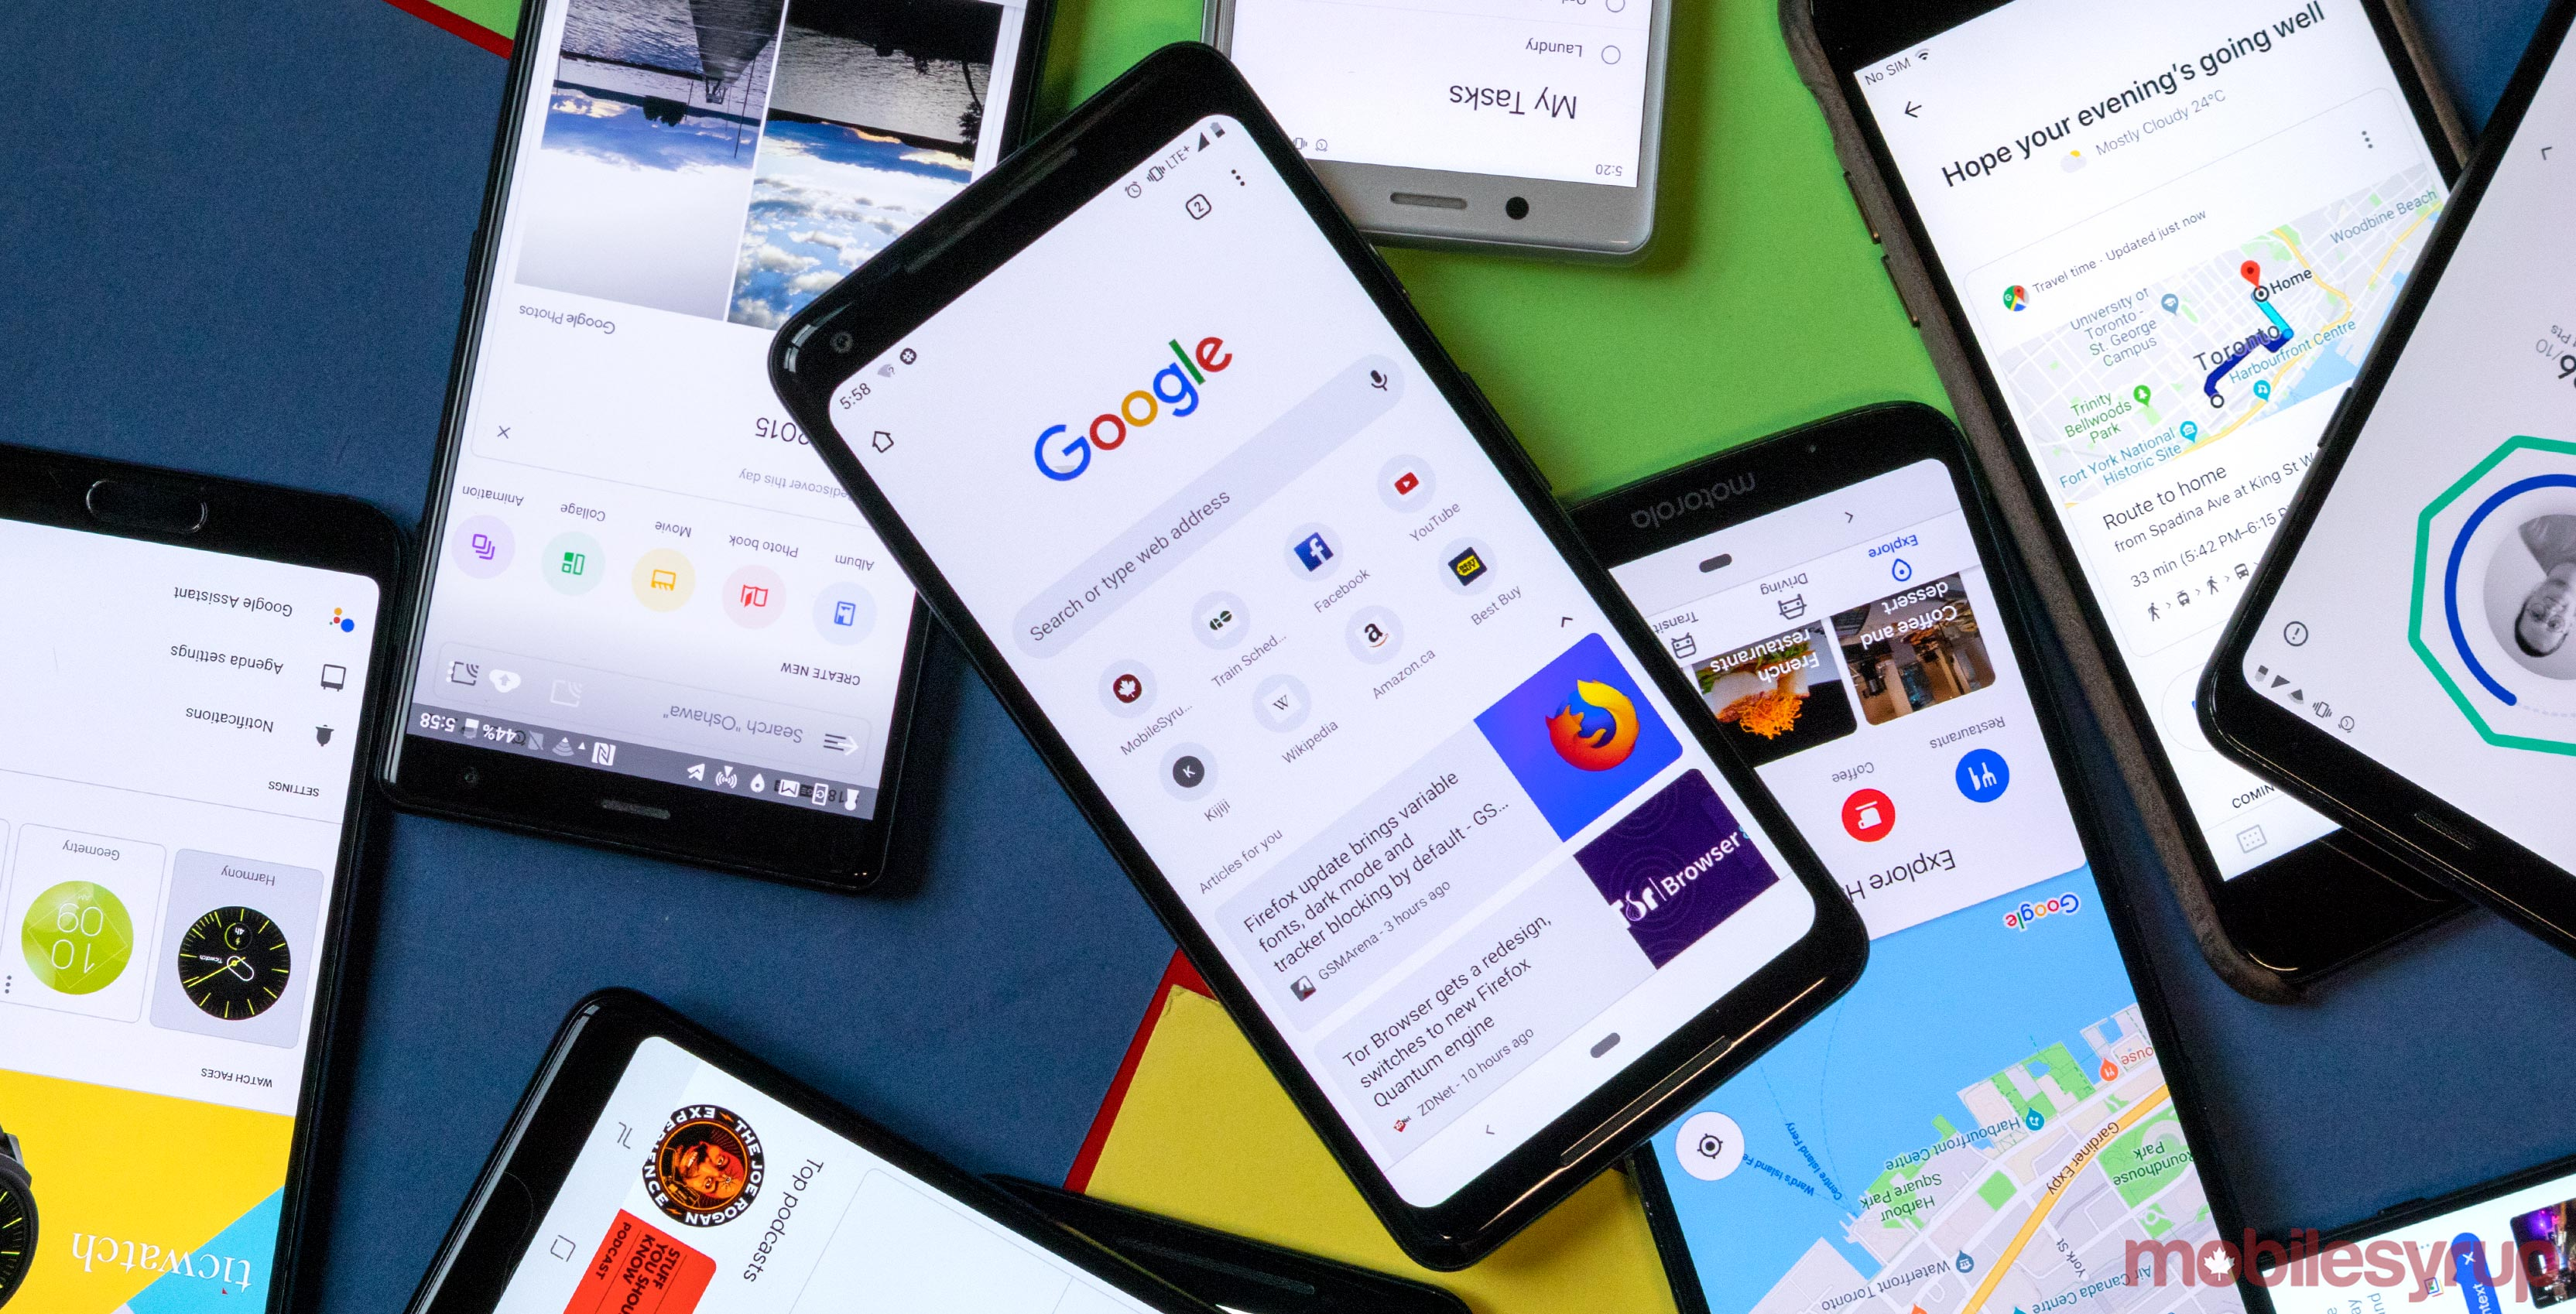 Here are Google's modern Material Design apps – where are